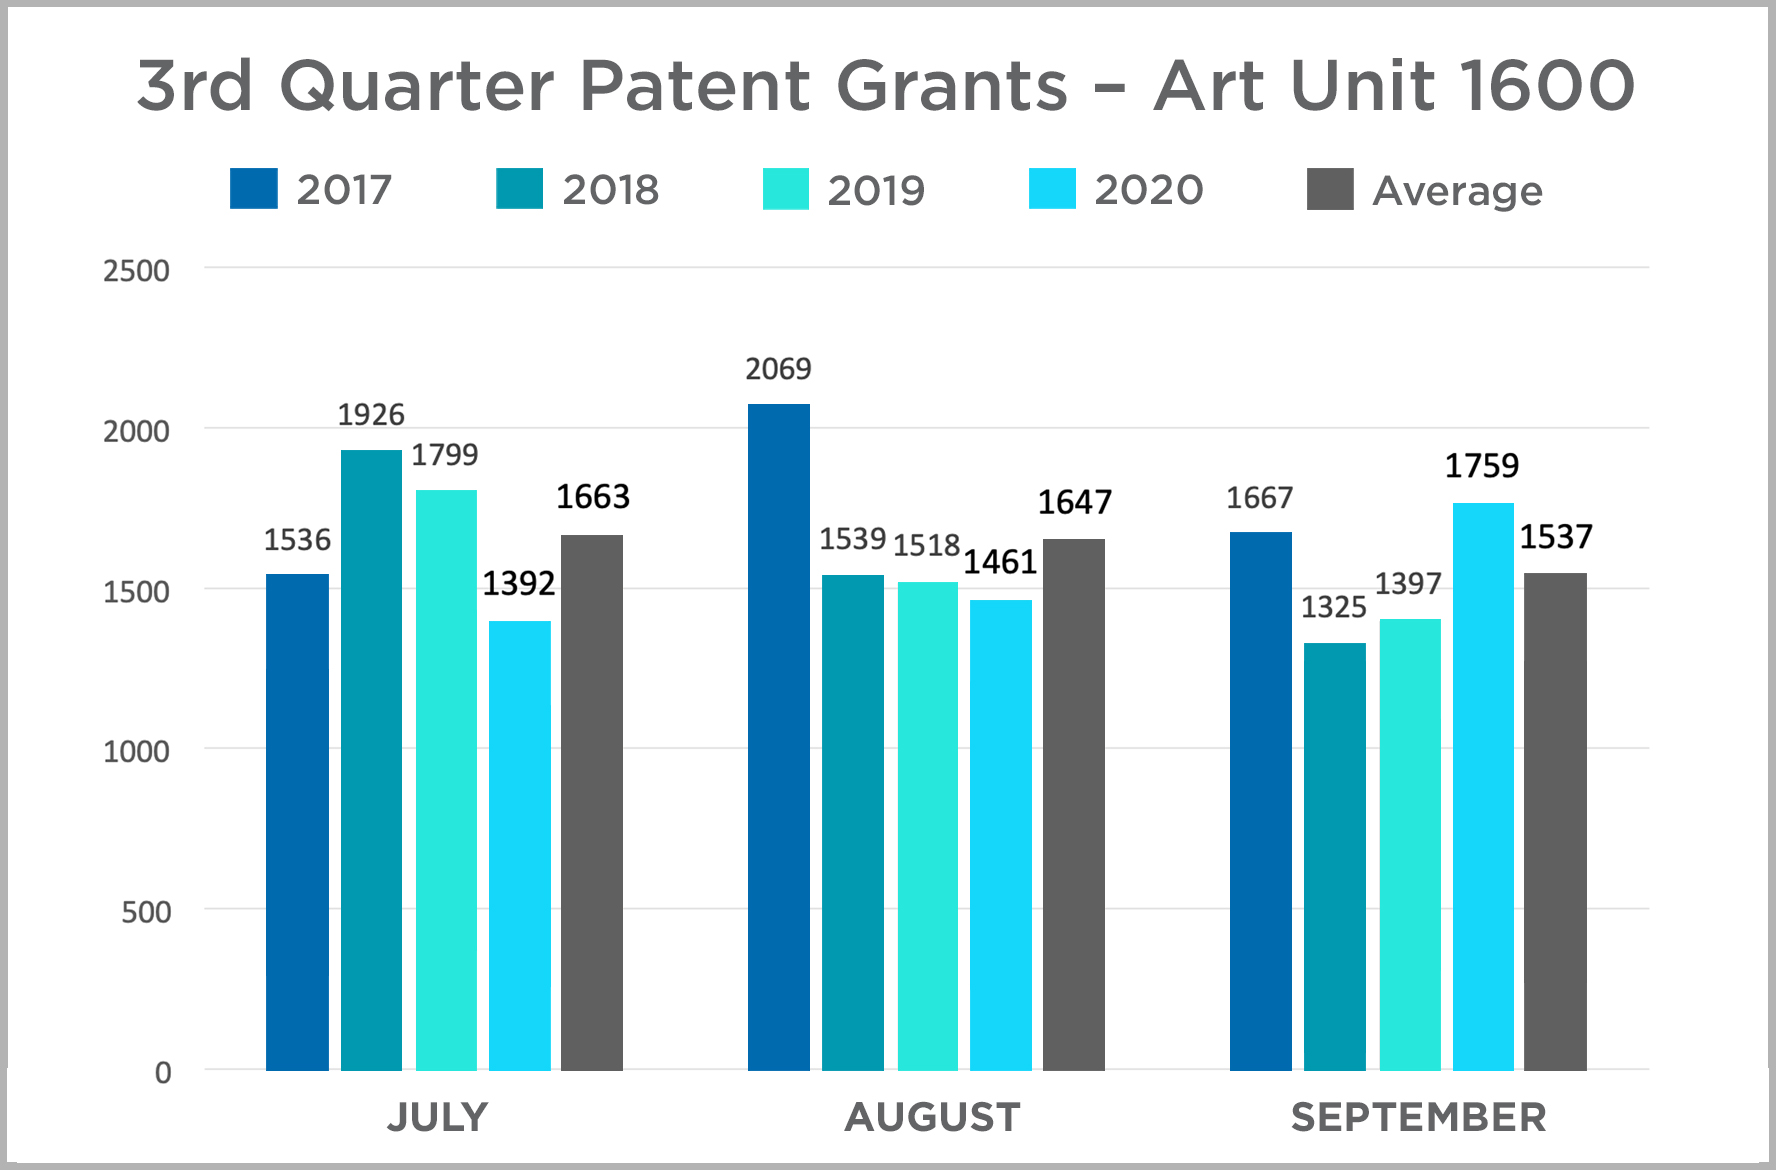 3rd Quarter Patent Grants - Art Unit 1600